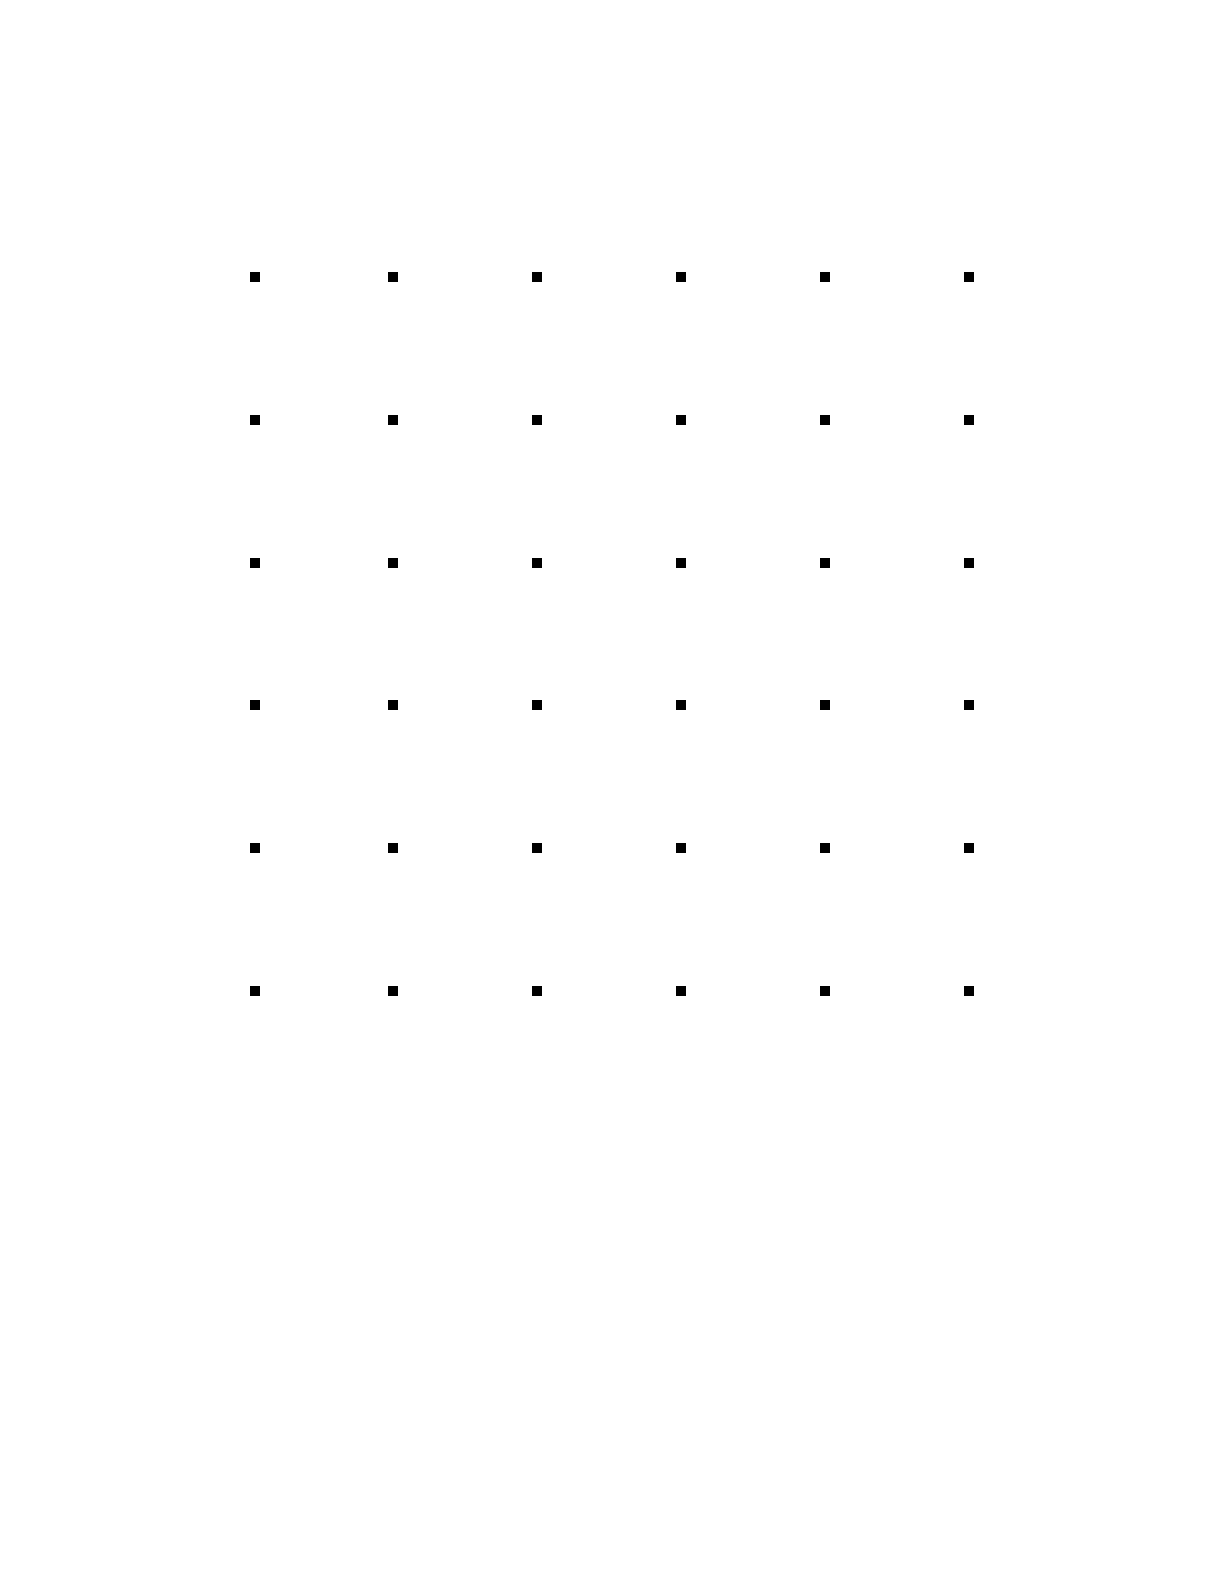 image relating to Dots and Boxes Printable referred to as Printable Dots and Bins Match Free of charge Obtain